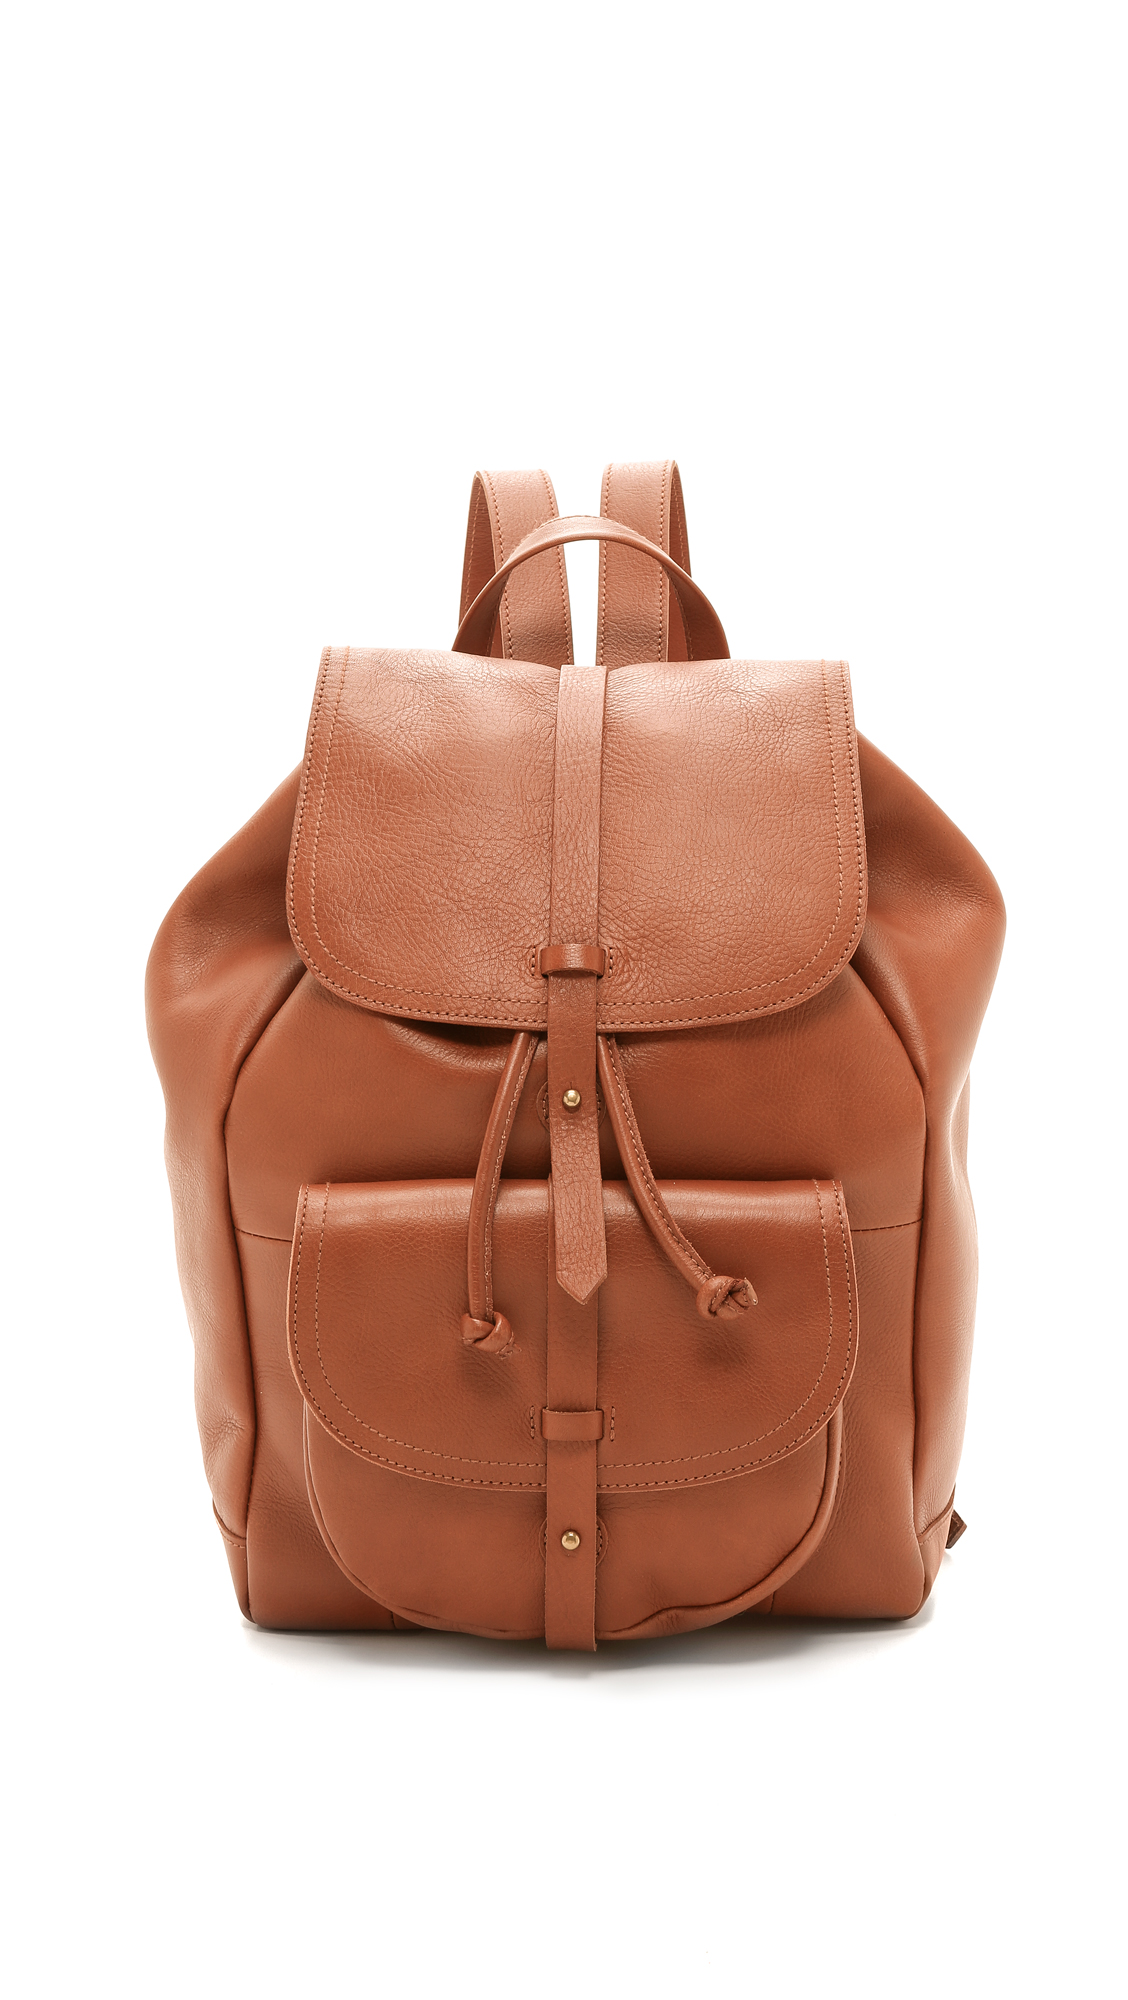 A large Madewell backpack rendered in sturdy leather. The top flap secures with a buttoned strap, and a flap pouch pocket outfits the front. Drawstring top and lined, 3 pocket interior. Adjustable shoulder straps. Leather: Cowhide. Weight: 40